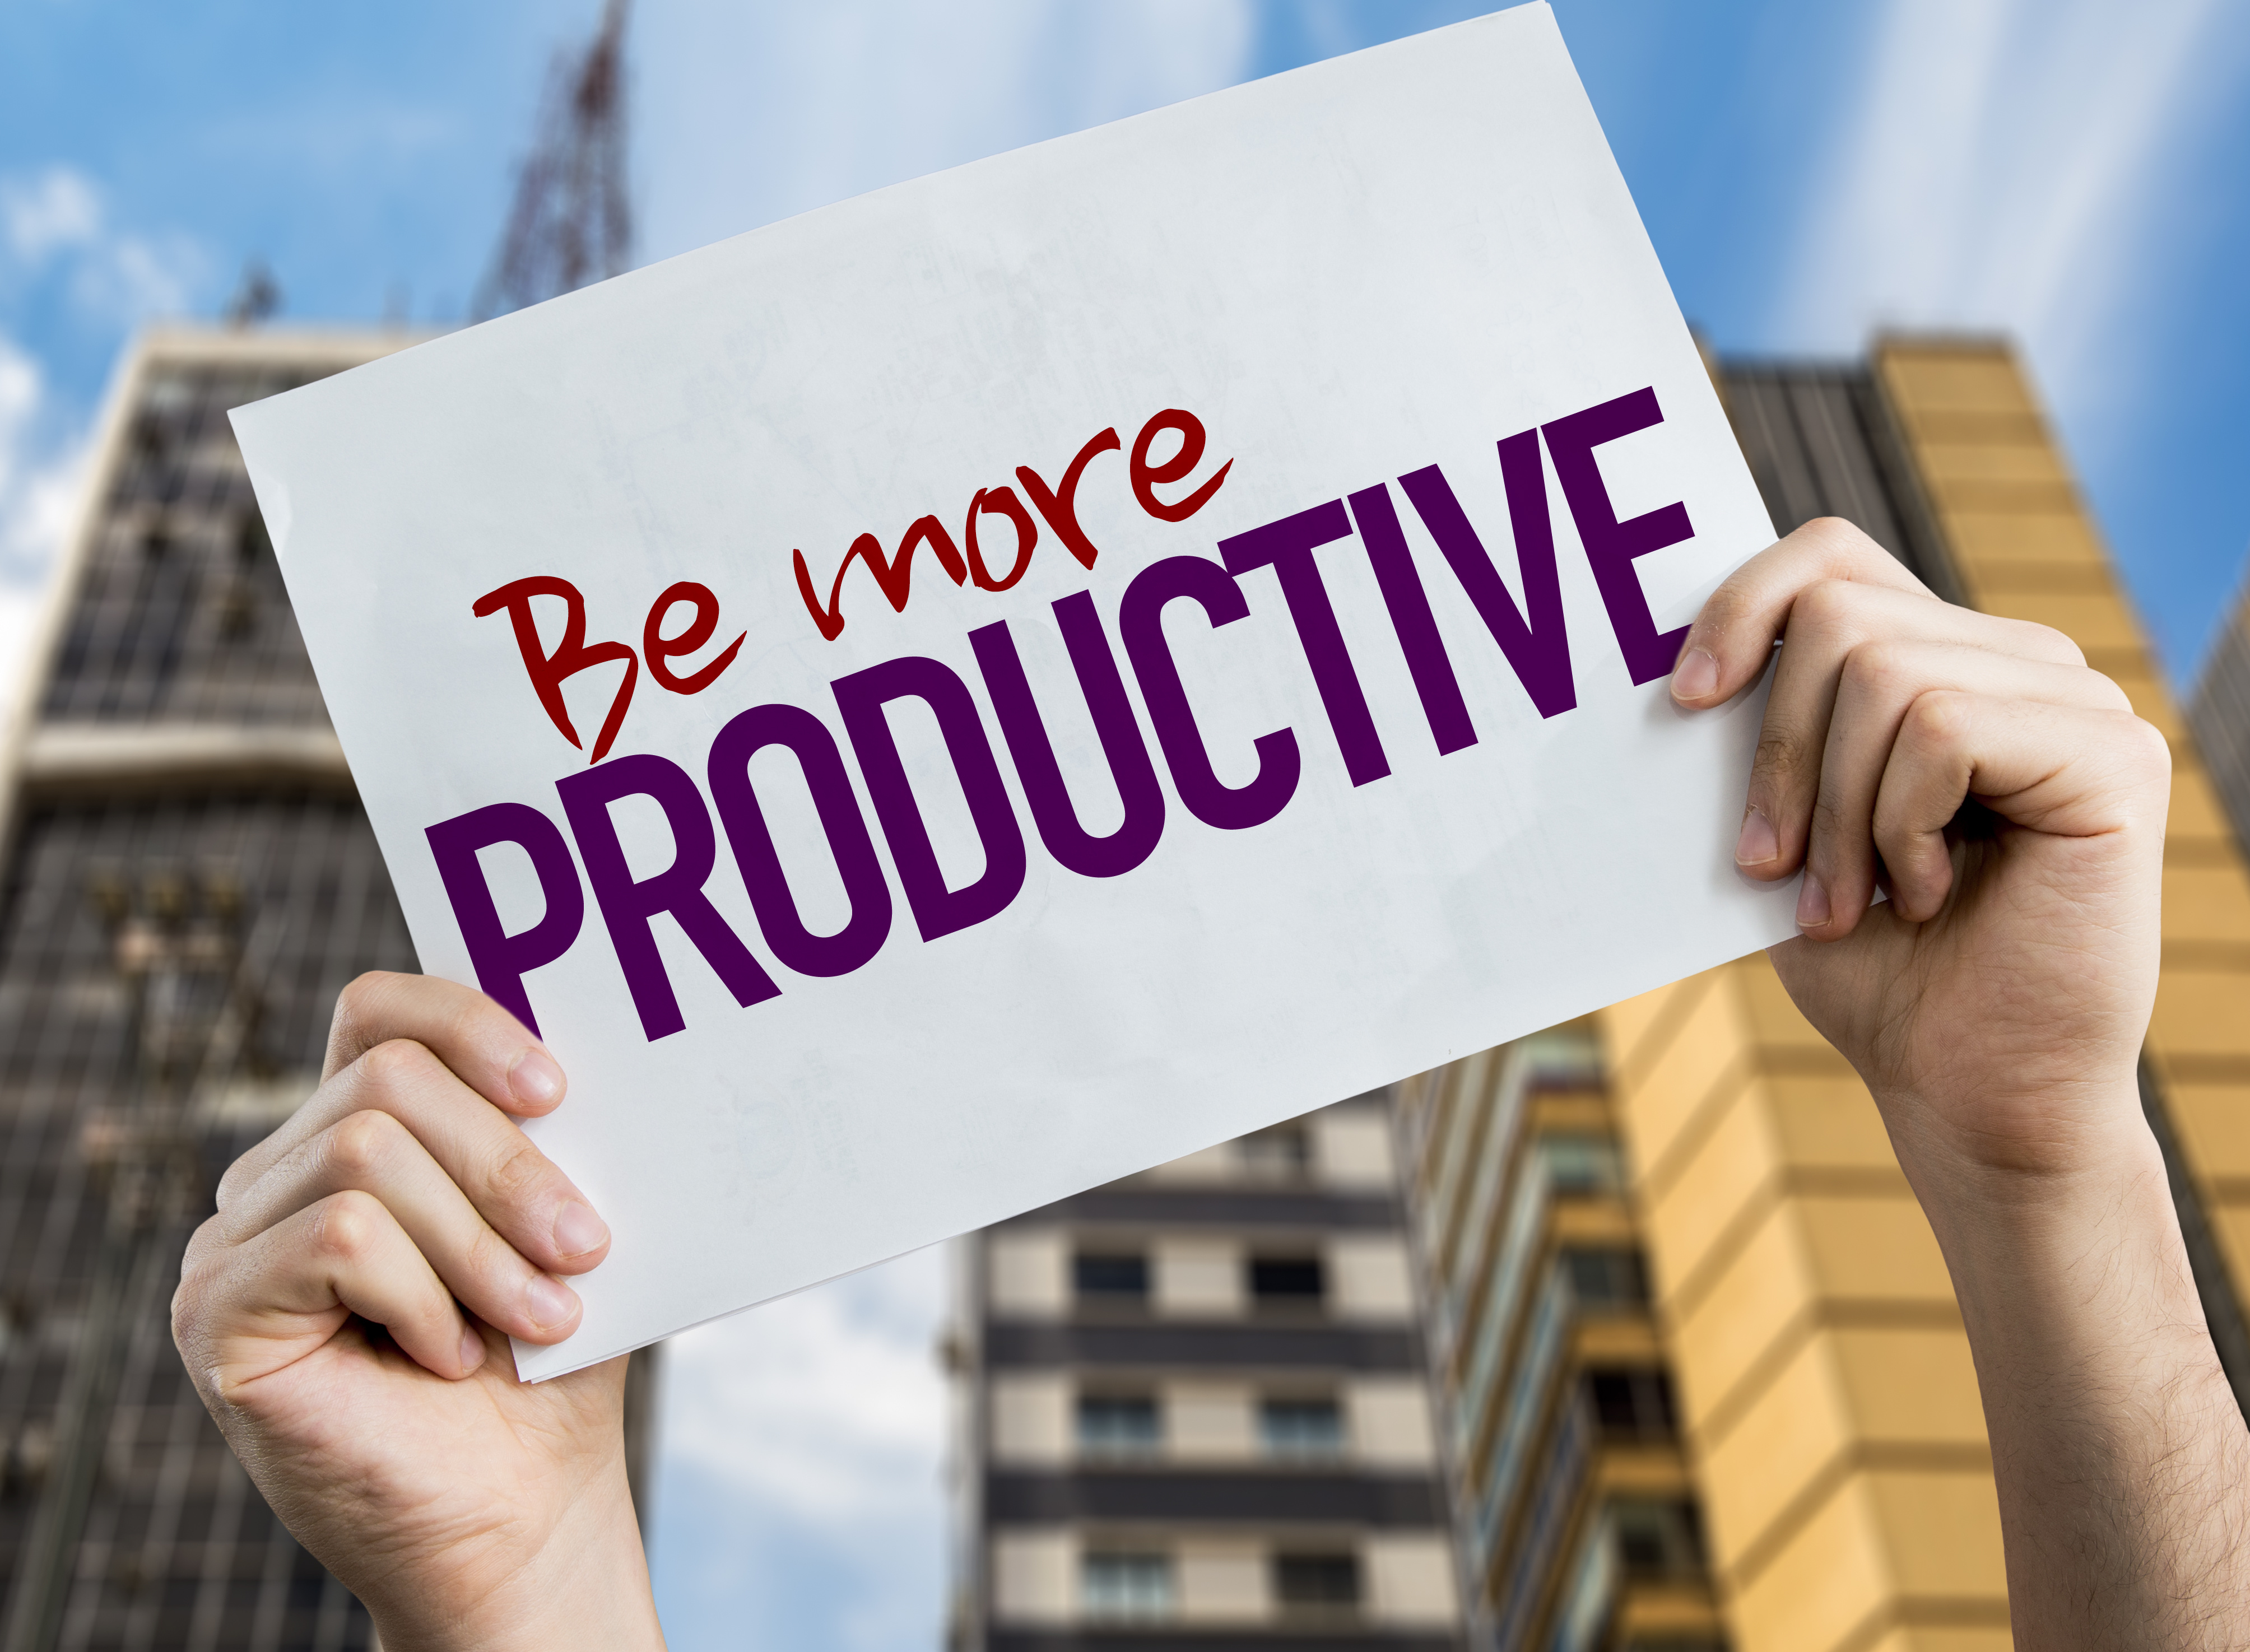 Productivity, be more productive